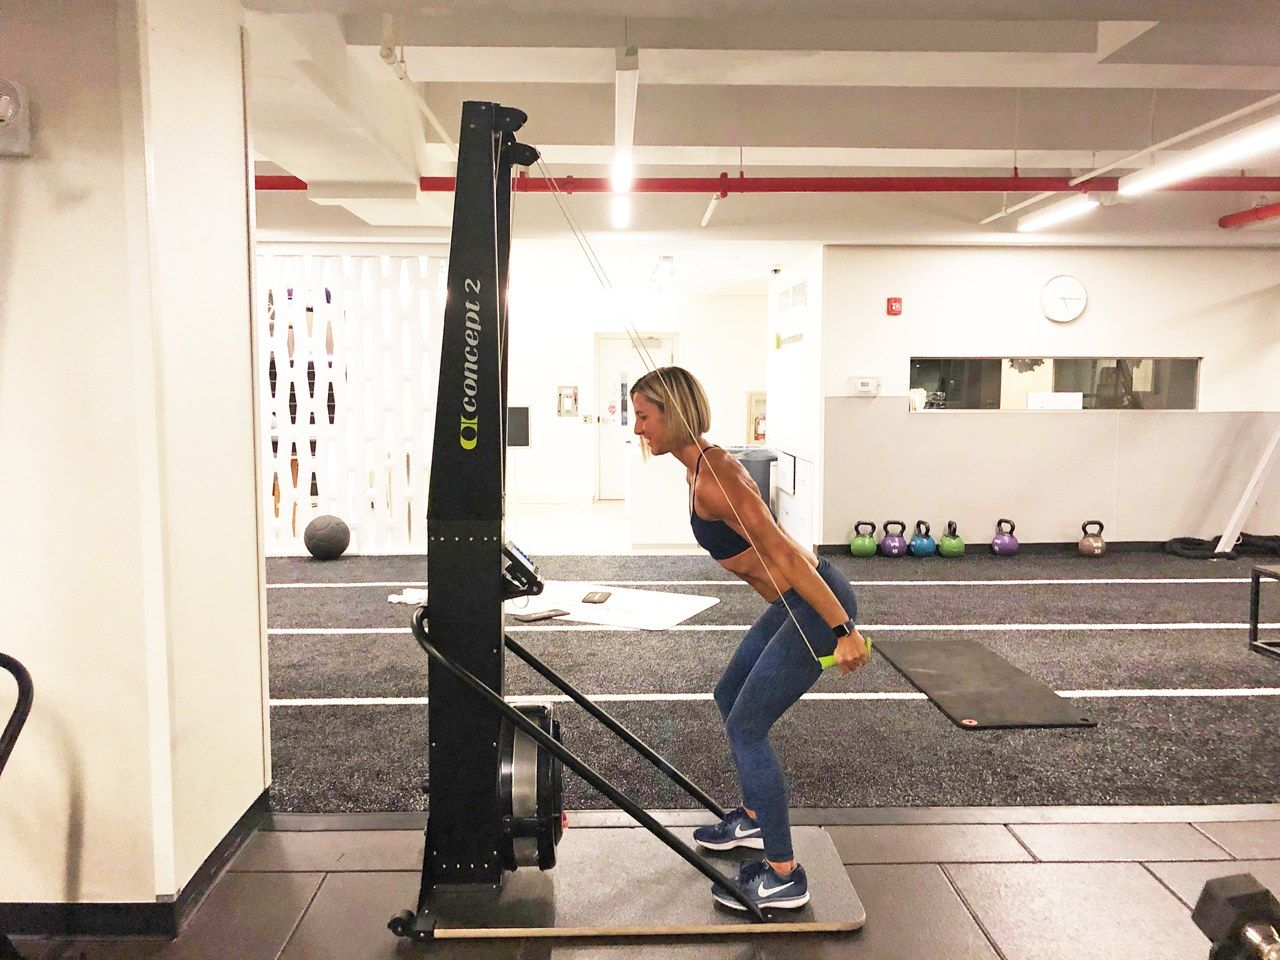 How To Get An Intense Low Impact Cardio Workout With The Skierg